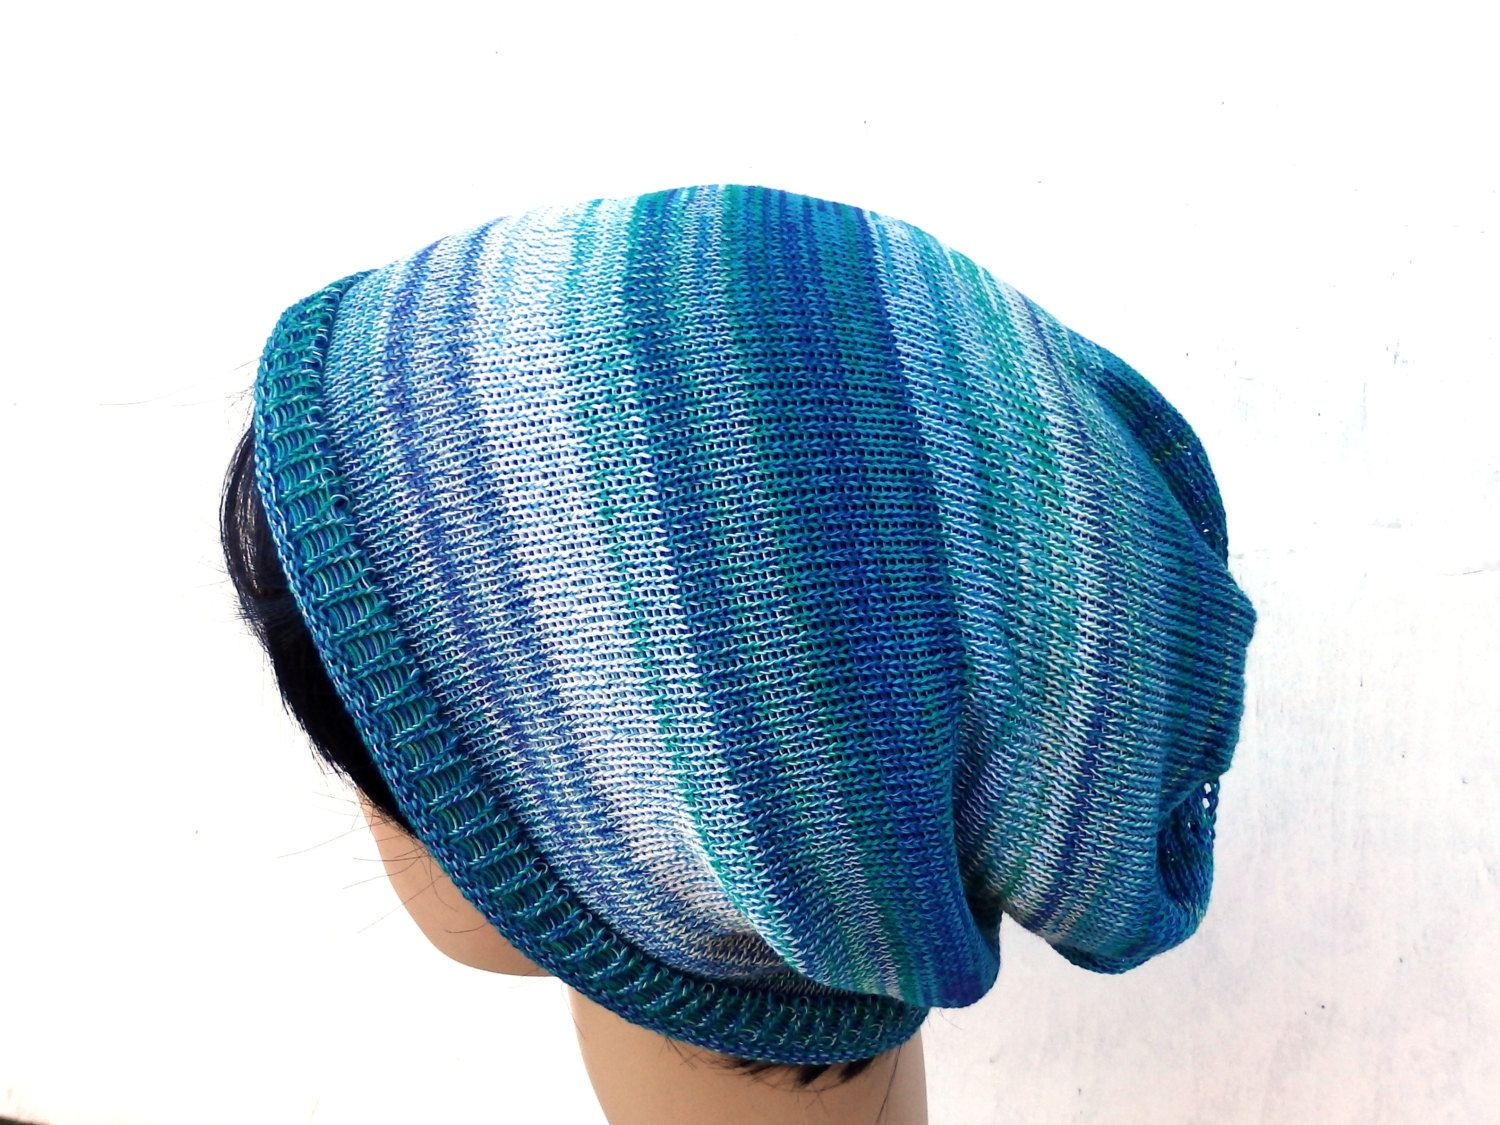 Knit hat, knitted cotton slouchy hat, knitting colorful white blue green cap, women men tam, adult beanie, handmade multicolor cap, hat by peonijahandmadeshop on Etsy